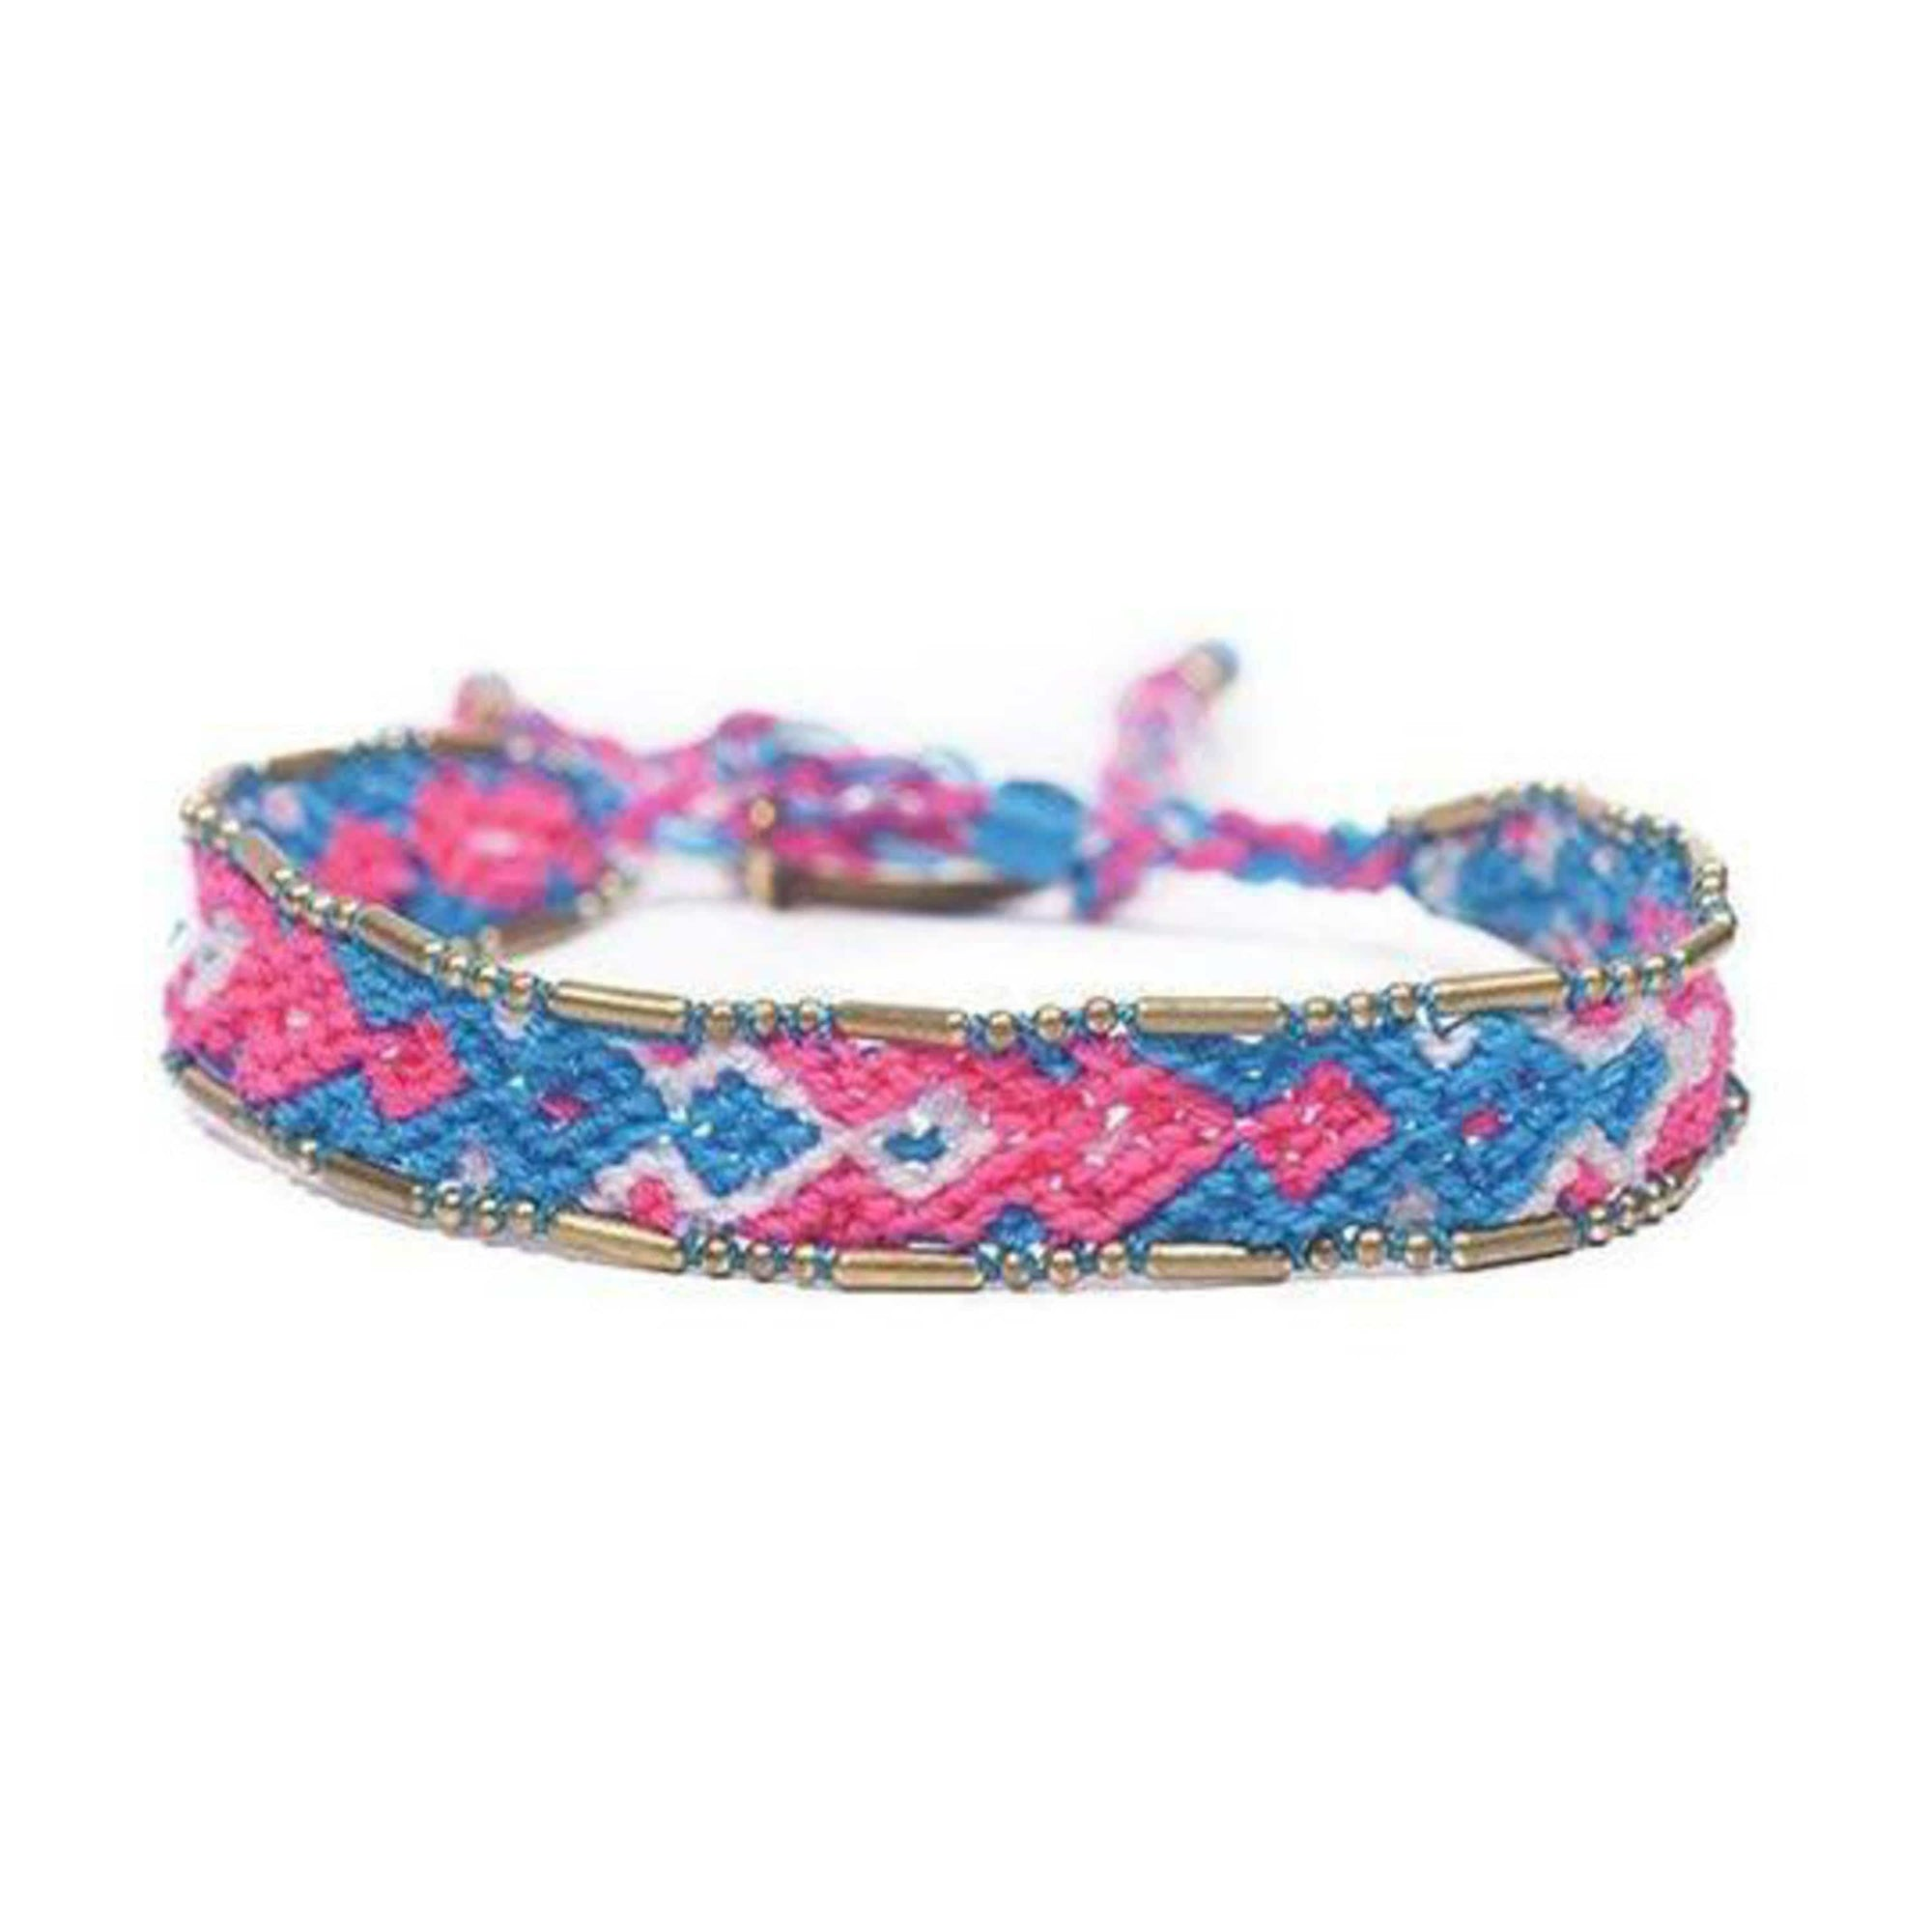 Bali Friendship Bracelet - Electric Love